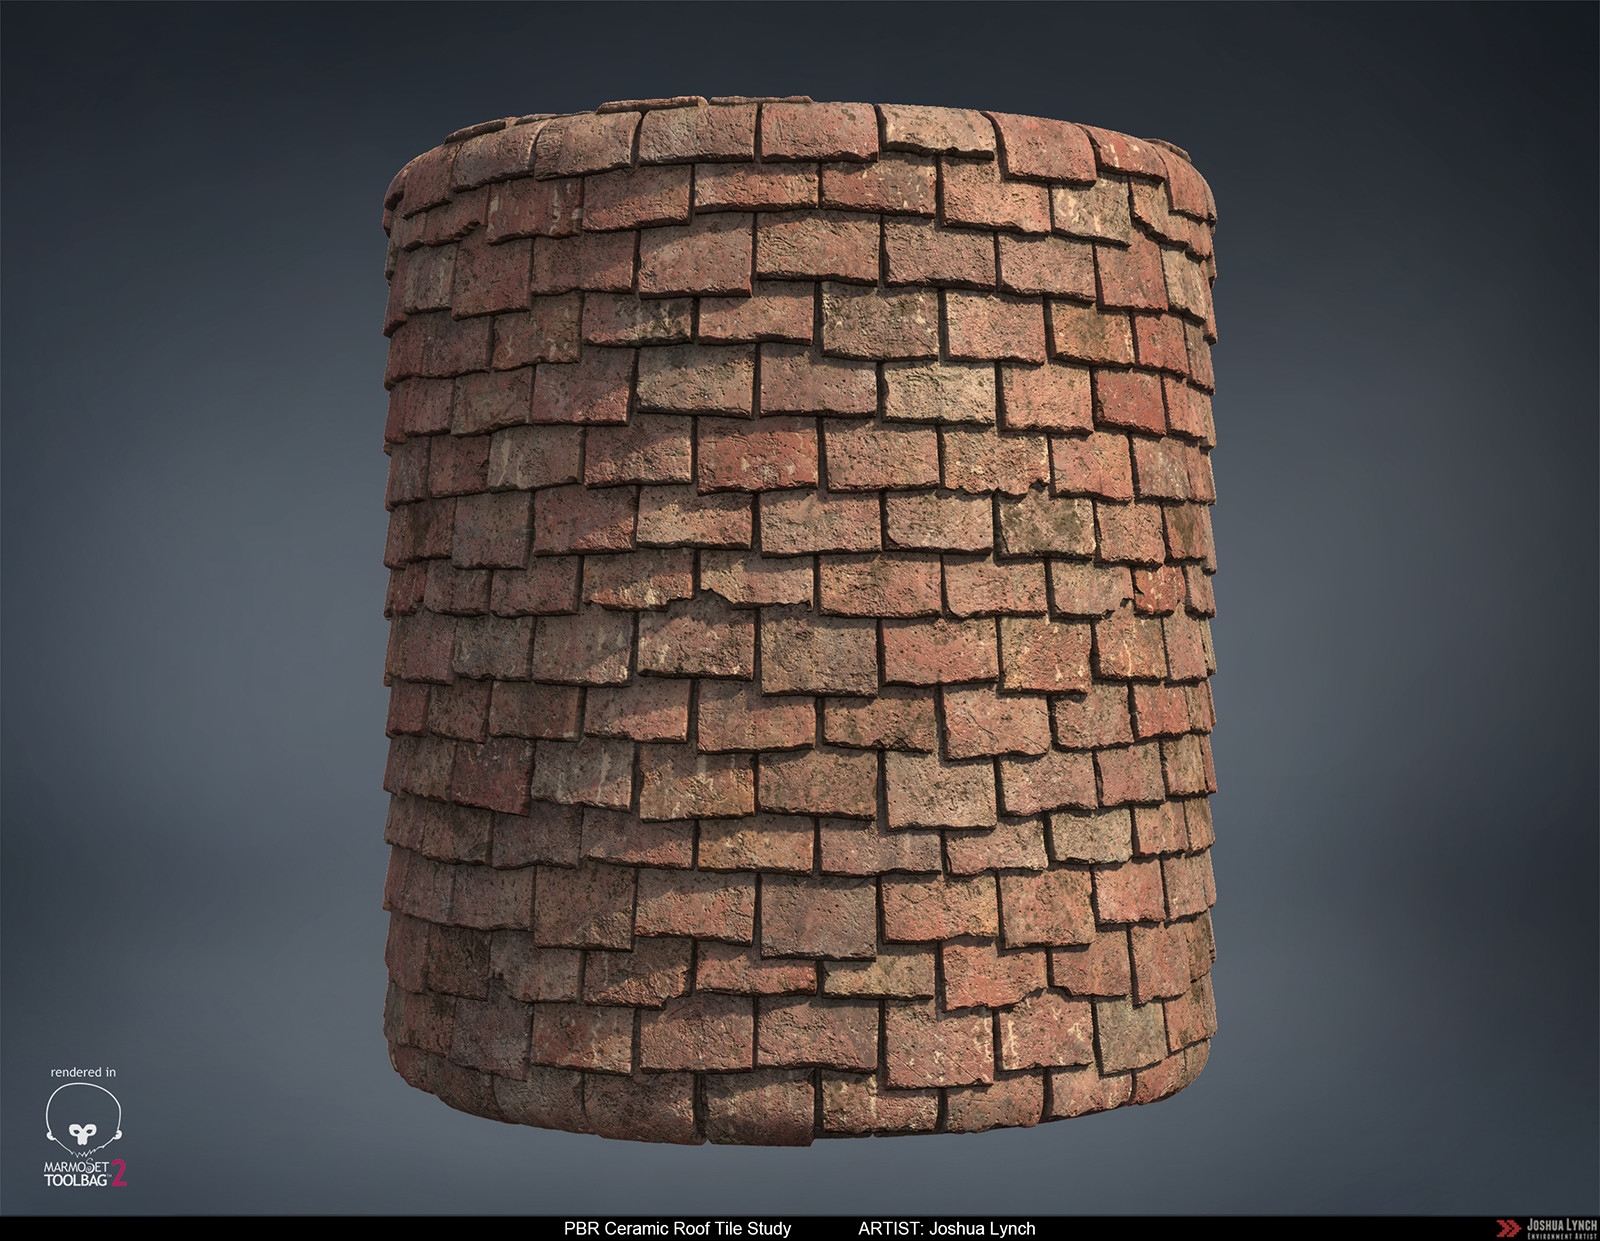 Joshua lynch pbr procedural ceramic roof tiles material study joshua lynch roofing tiles 01 cylinder rev 02 layout comp josh lynch dailygadgetfo Image collections